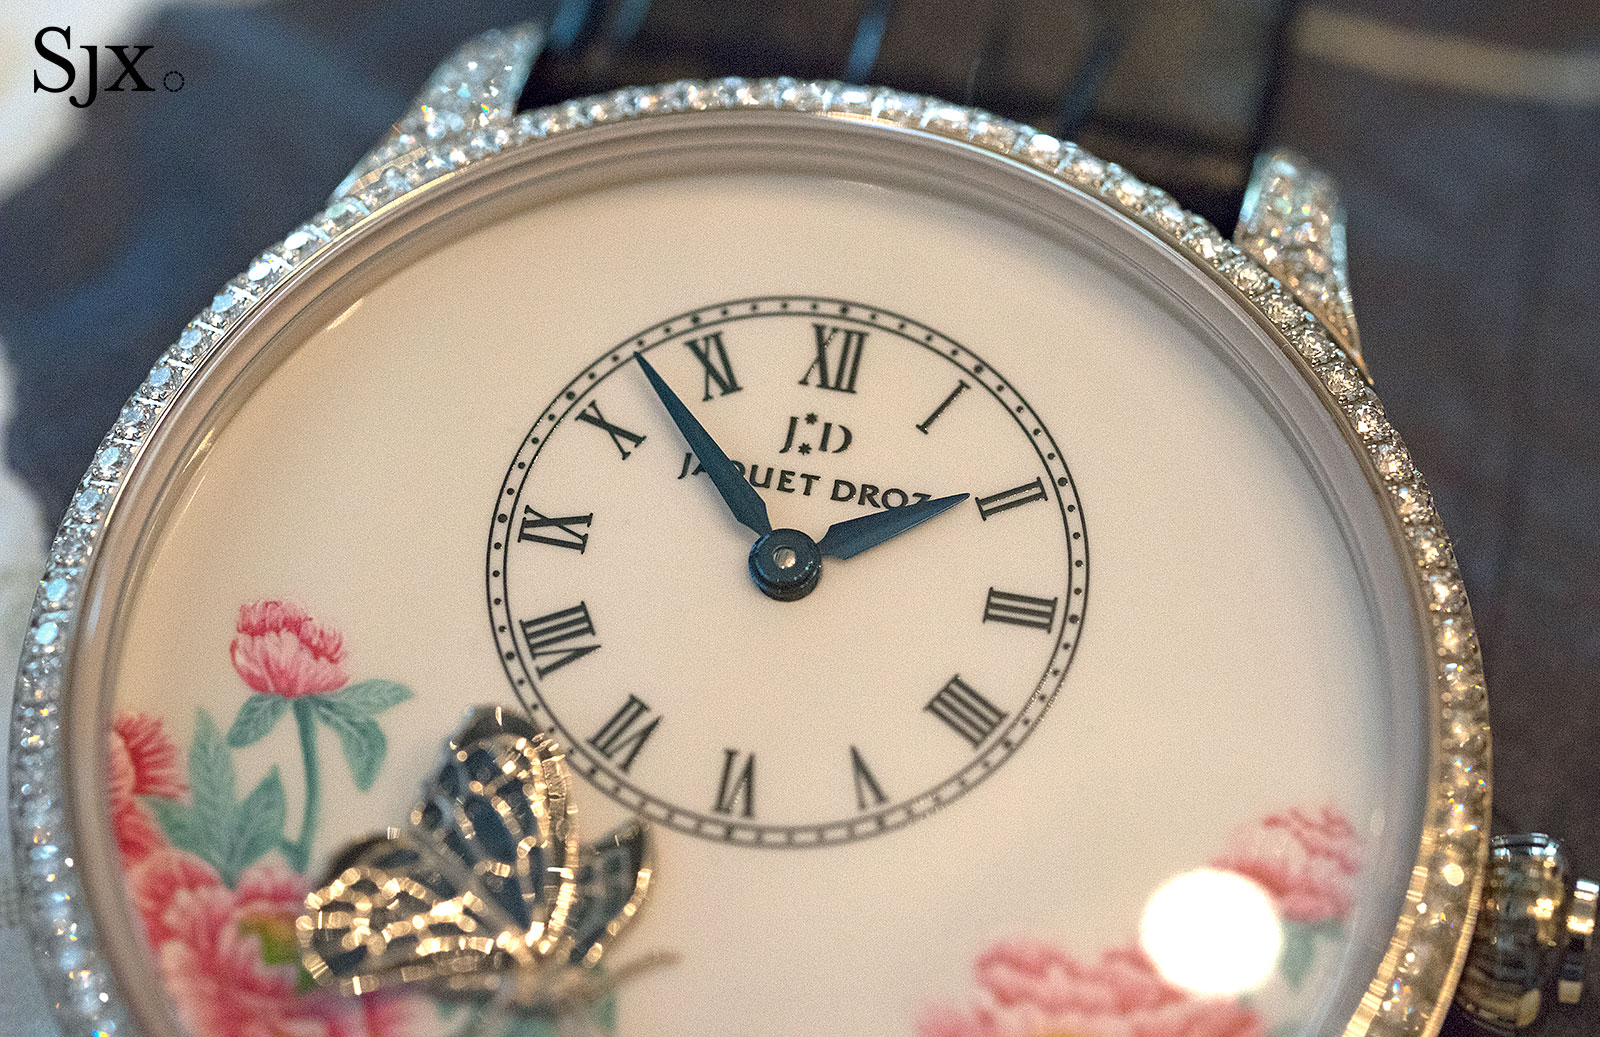 Jaquet Droz Petite Heure Minute The Butterfly Journey 5